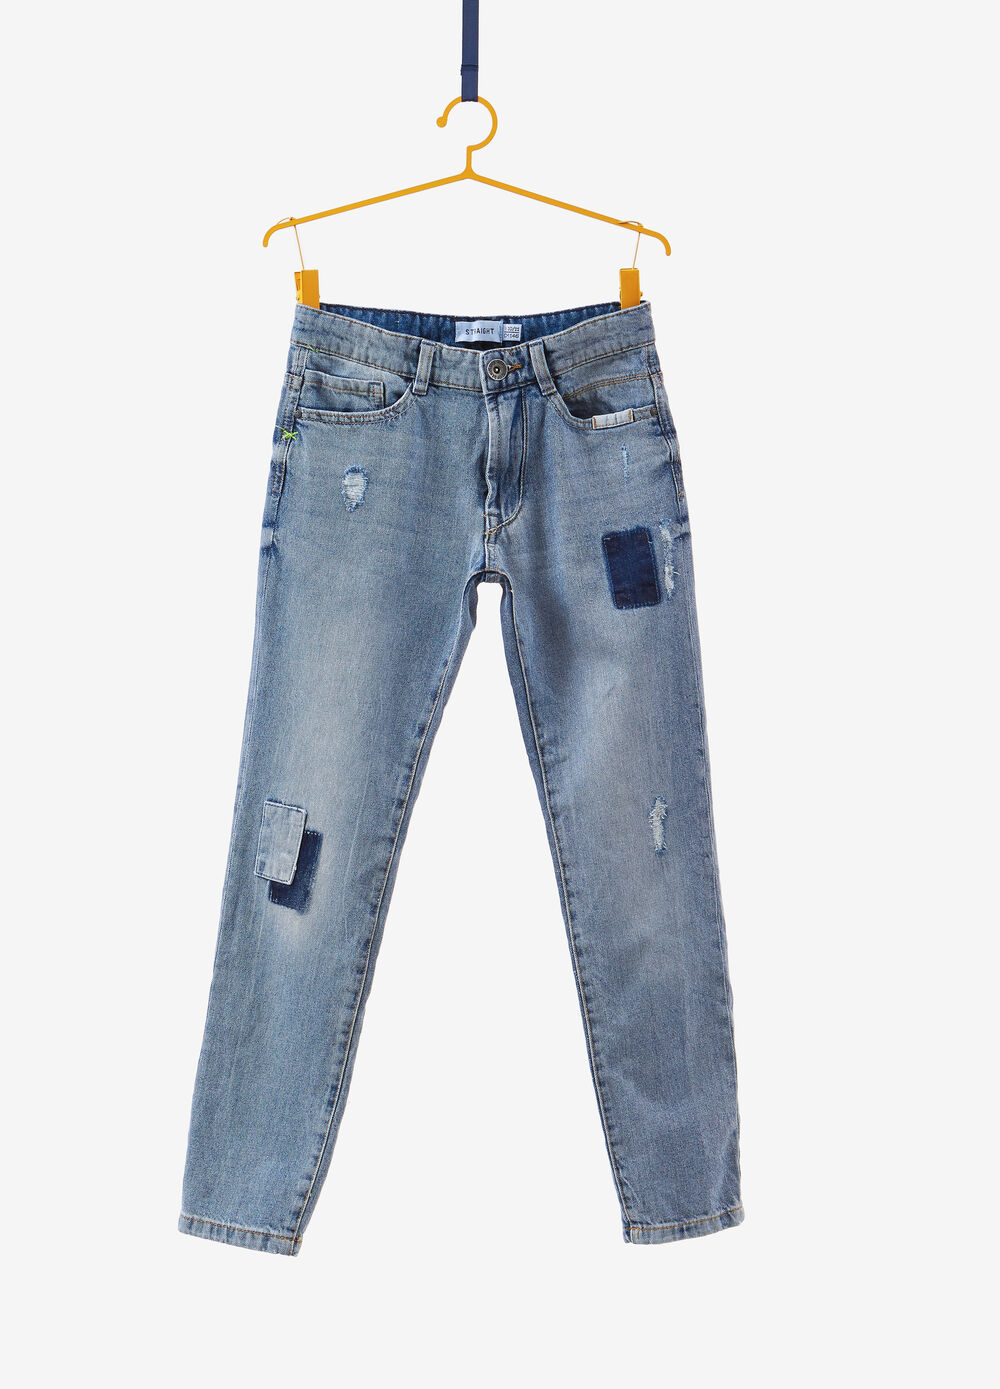 Low-fit jeans with patches and abrasions